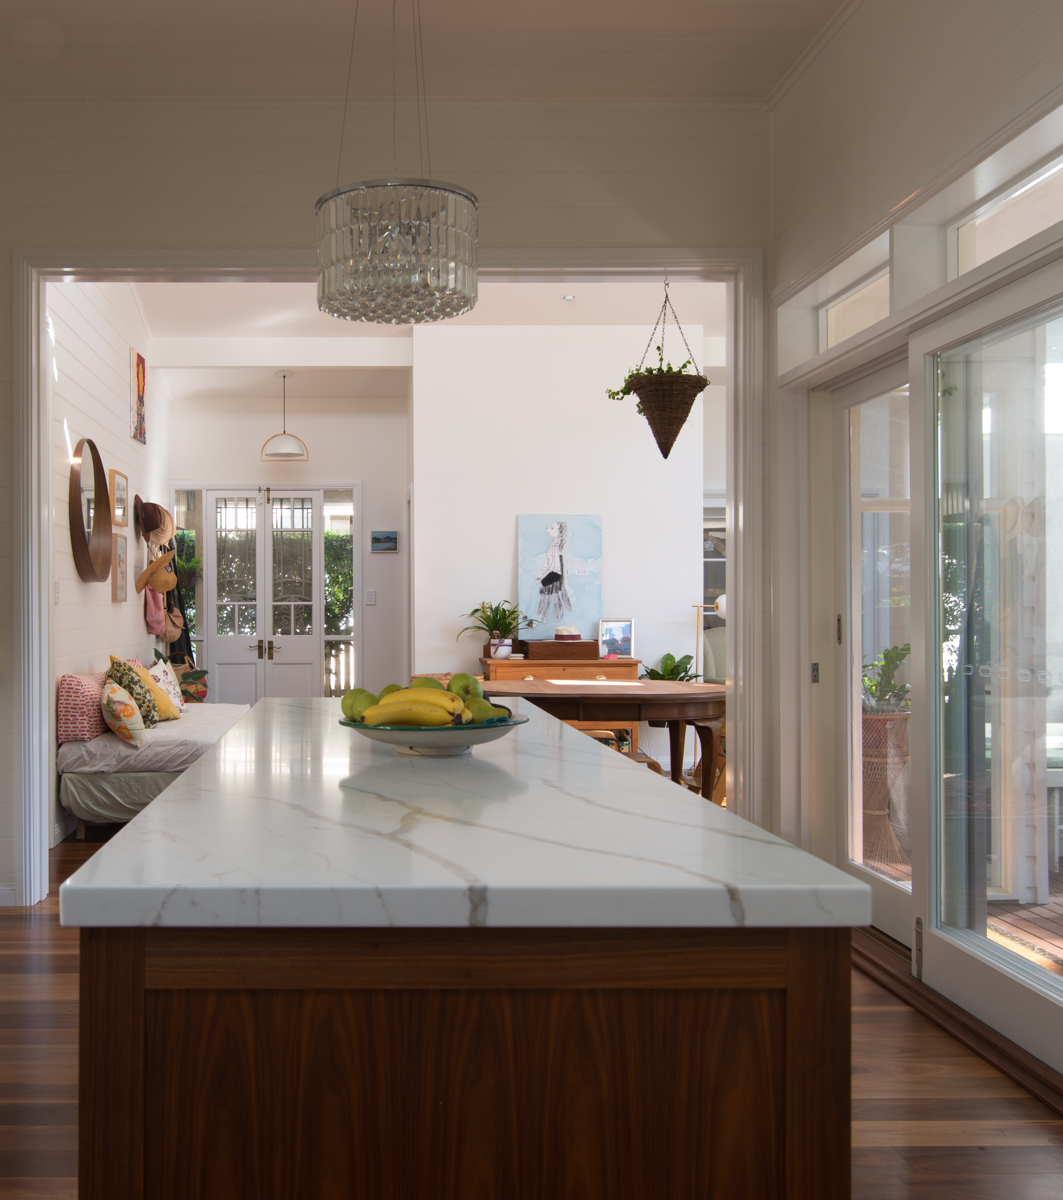 Stone and timber kitchen bench